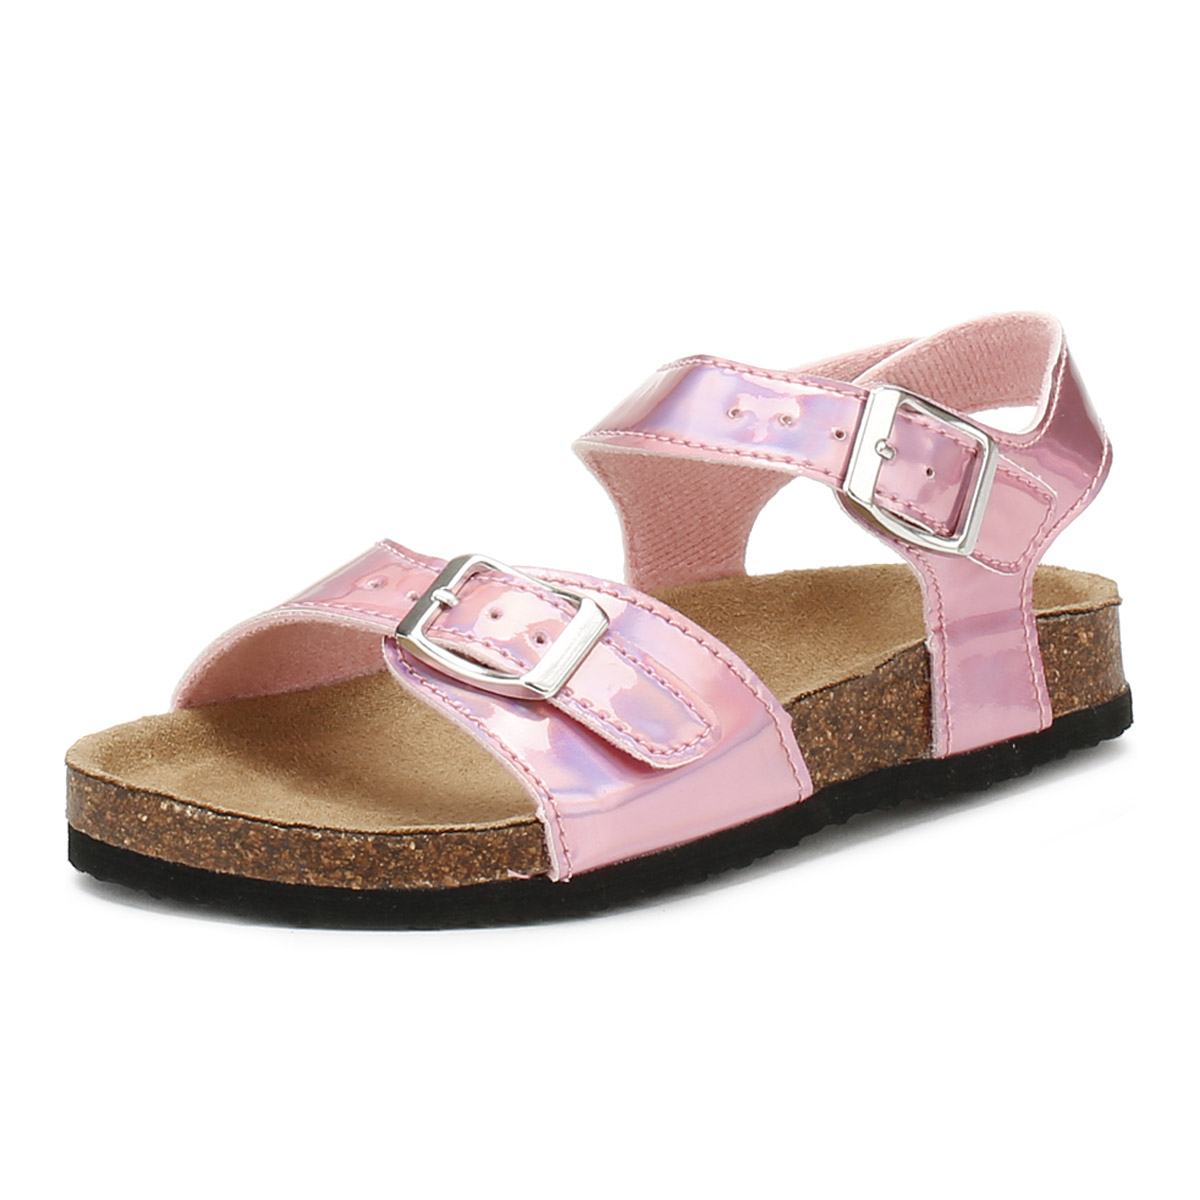 96e0aa639f5 Details about Joules Junior Pearl Pink Tipytoe Sandals Kids Girls Summer  Buckle Shoes